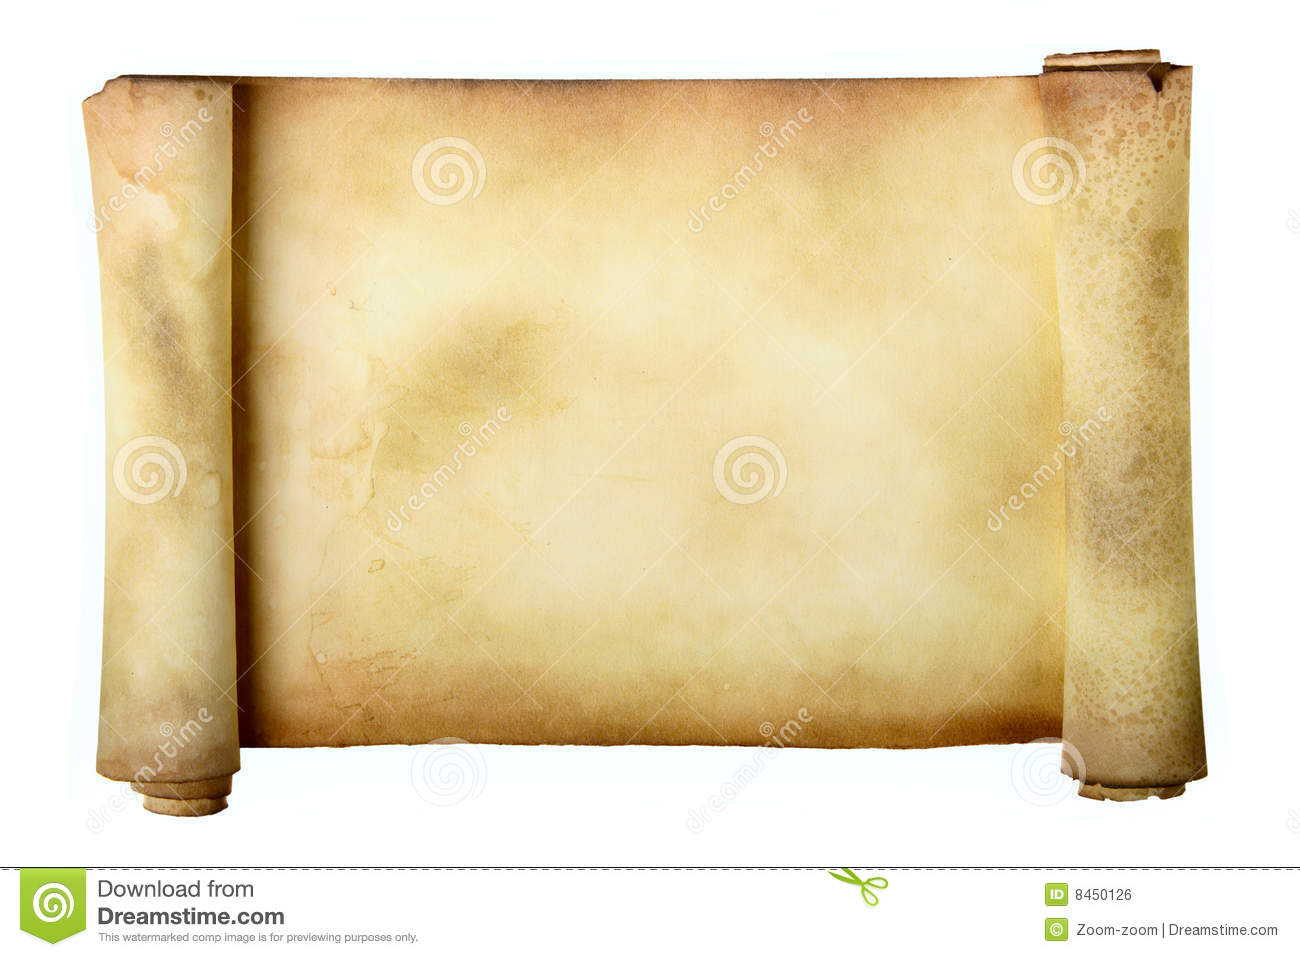 how to make an old scroll